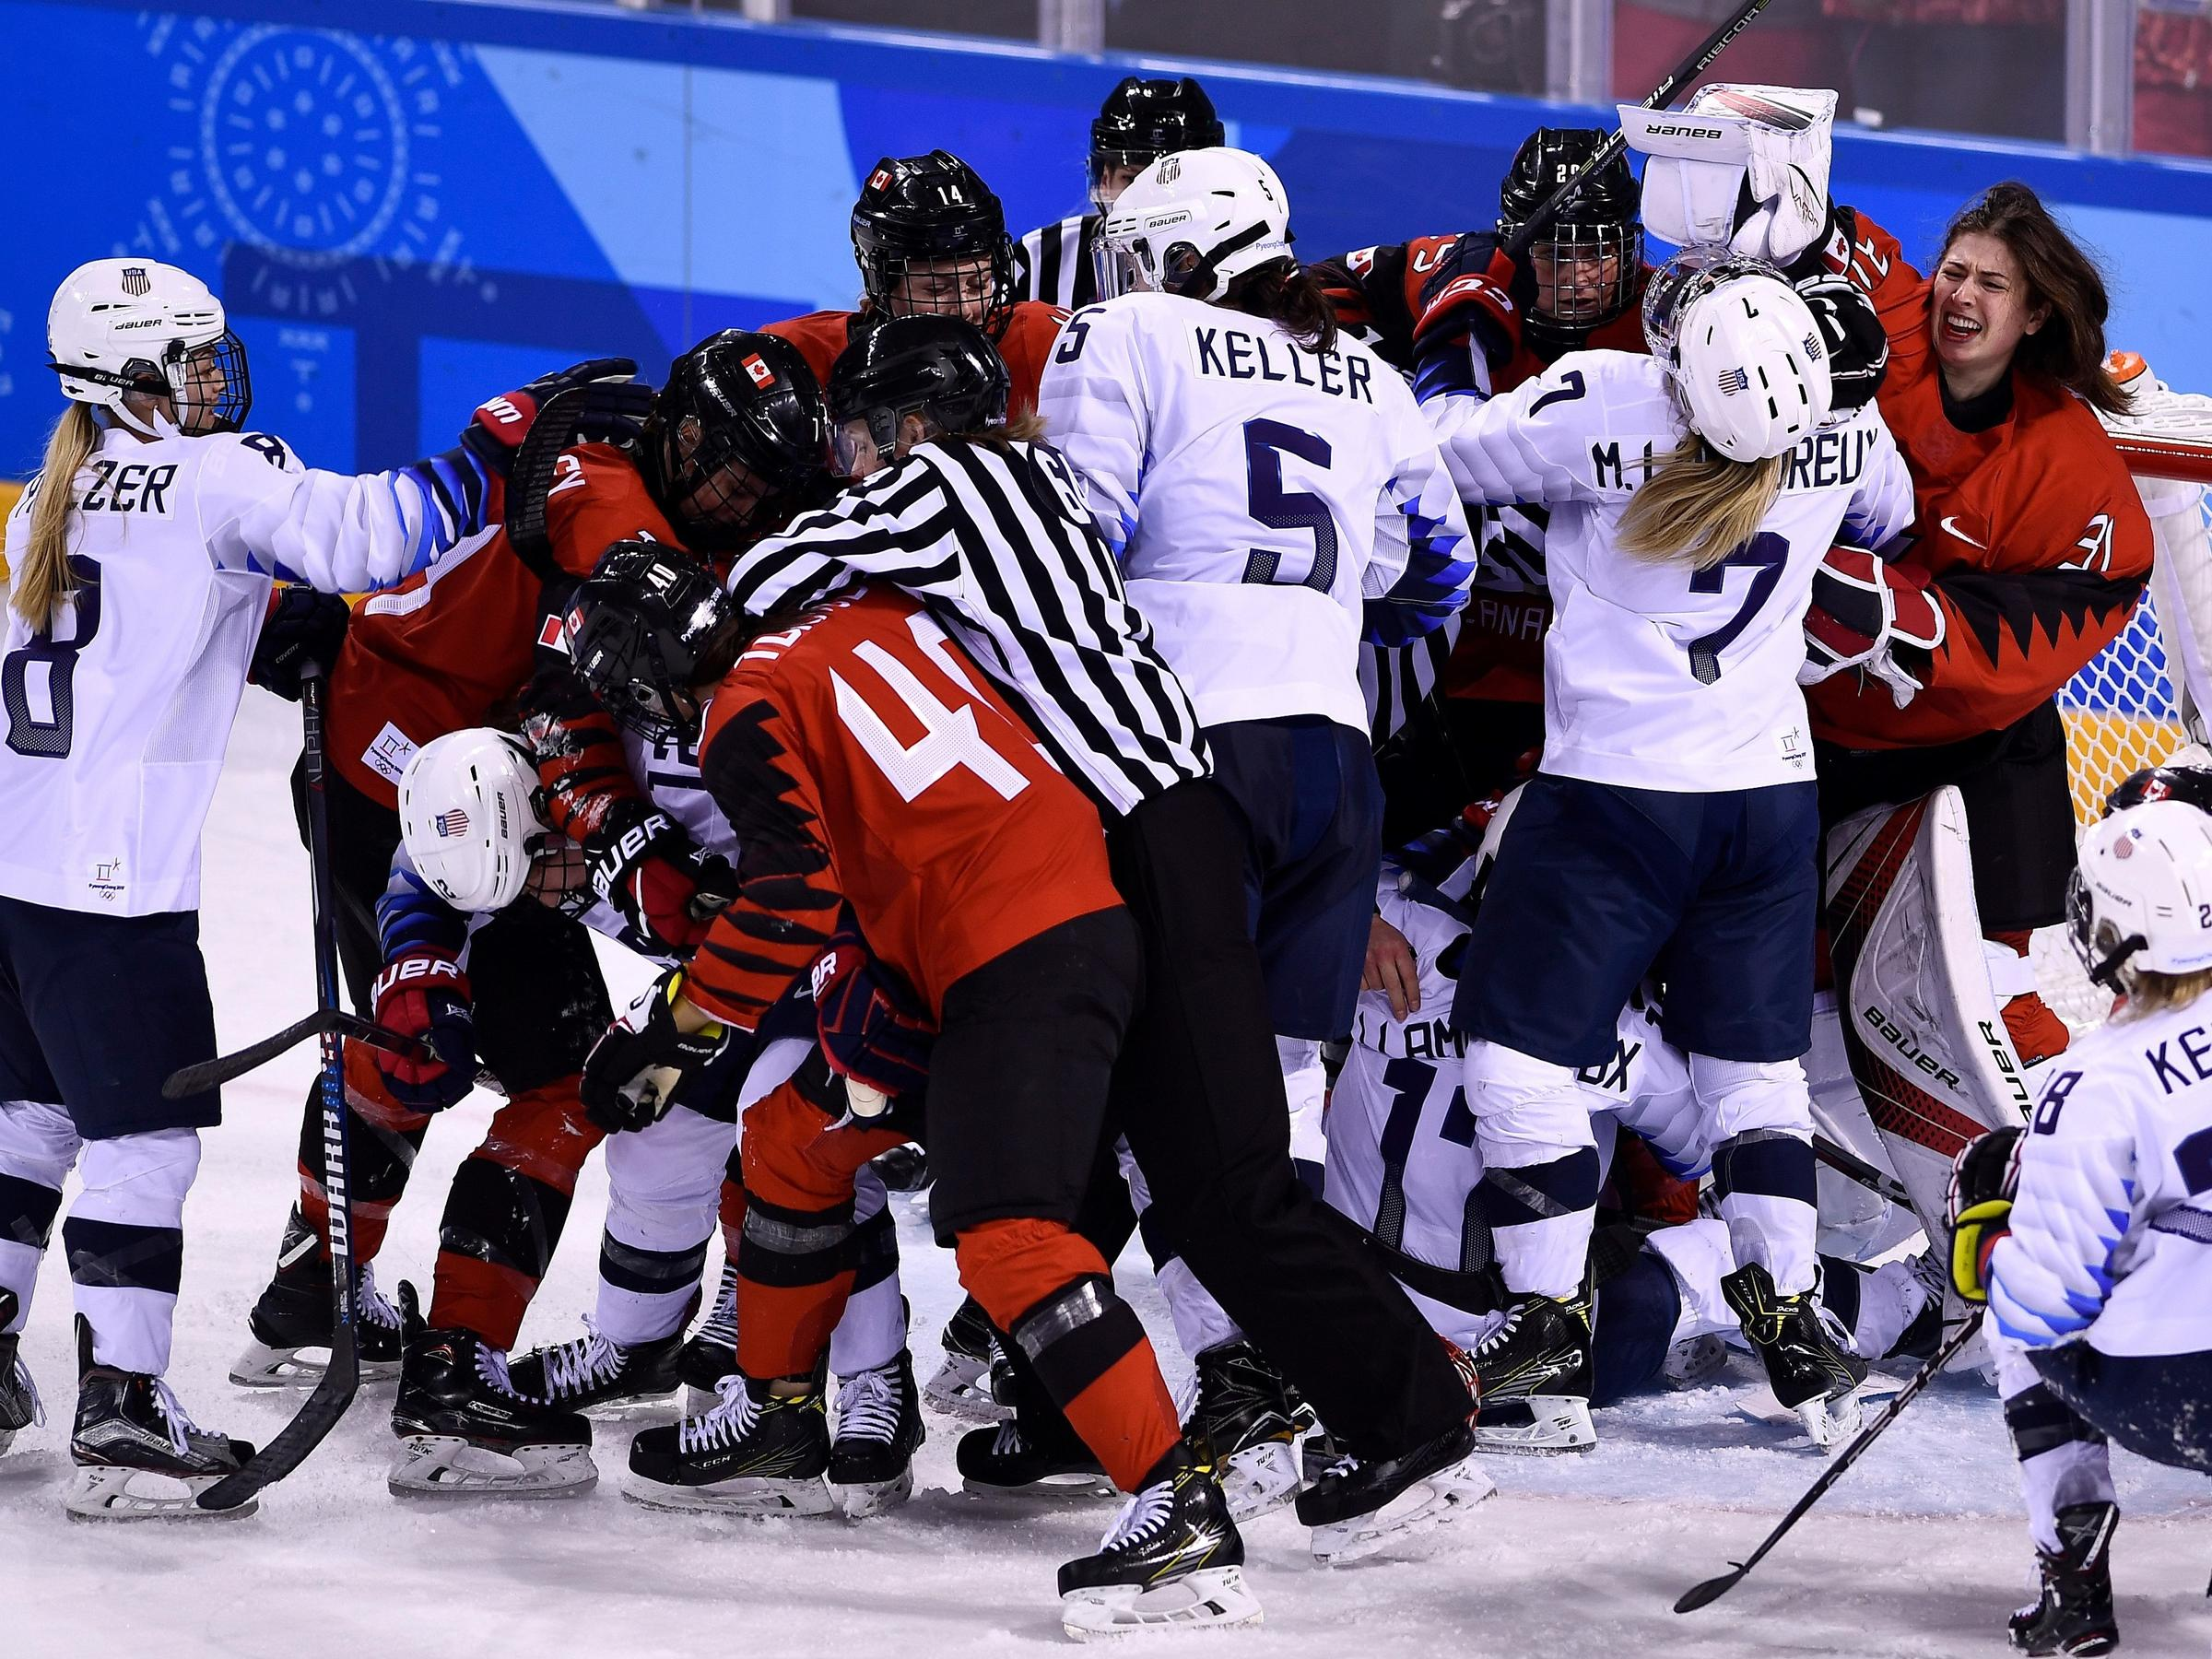 Gold Medal Battle Royal Awaits US, Canadian Women in Hockey